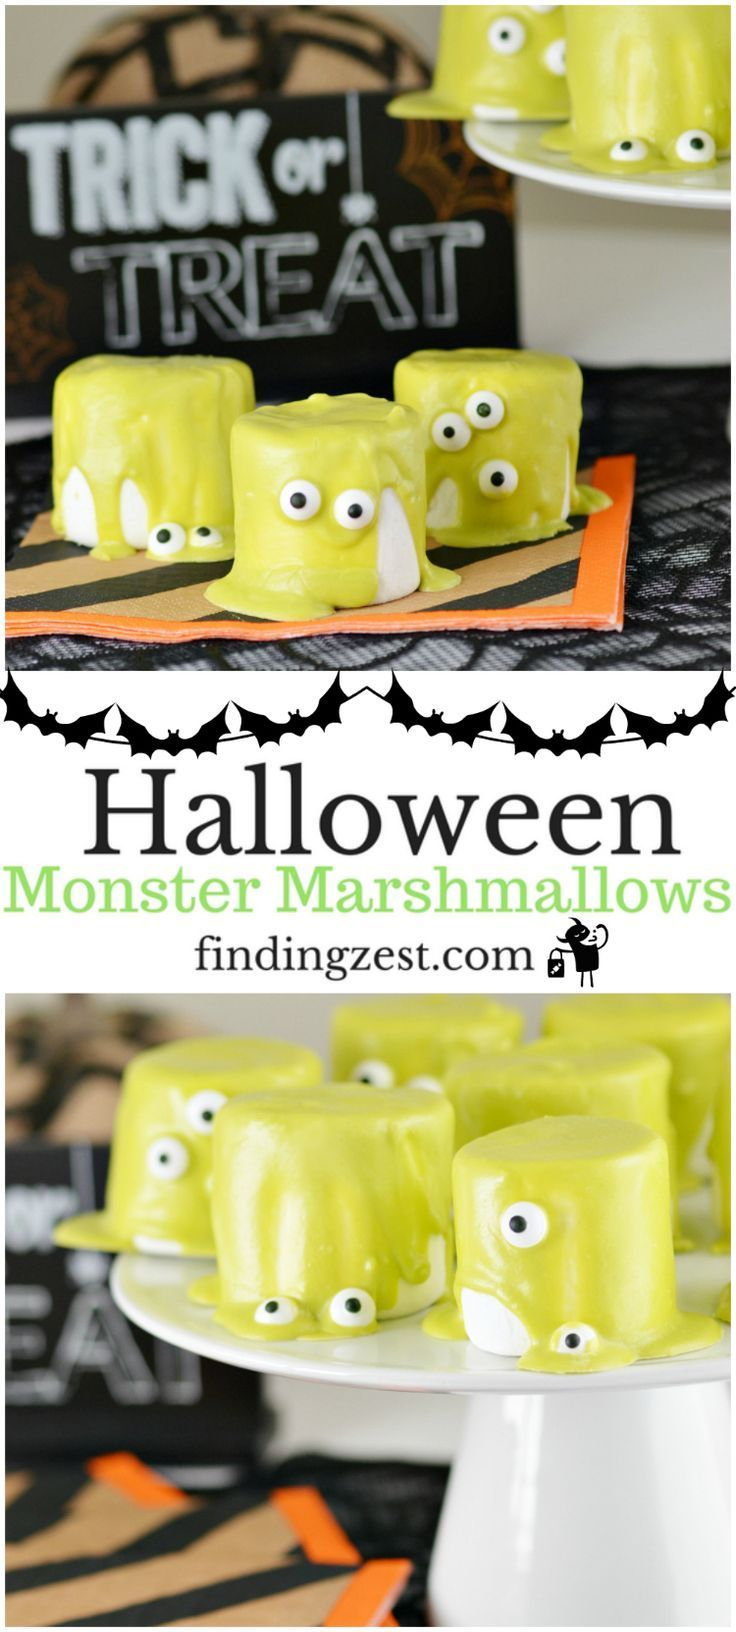 Halloween Monster Marshmallows: These fun slime marshmallows featuring droopy eyes are a fun no-bake Halloween treat!